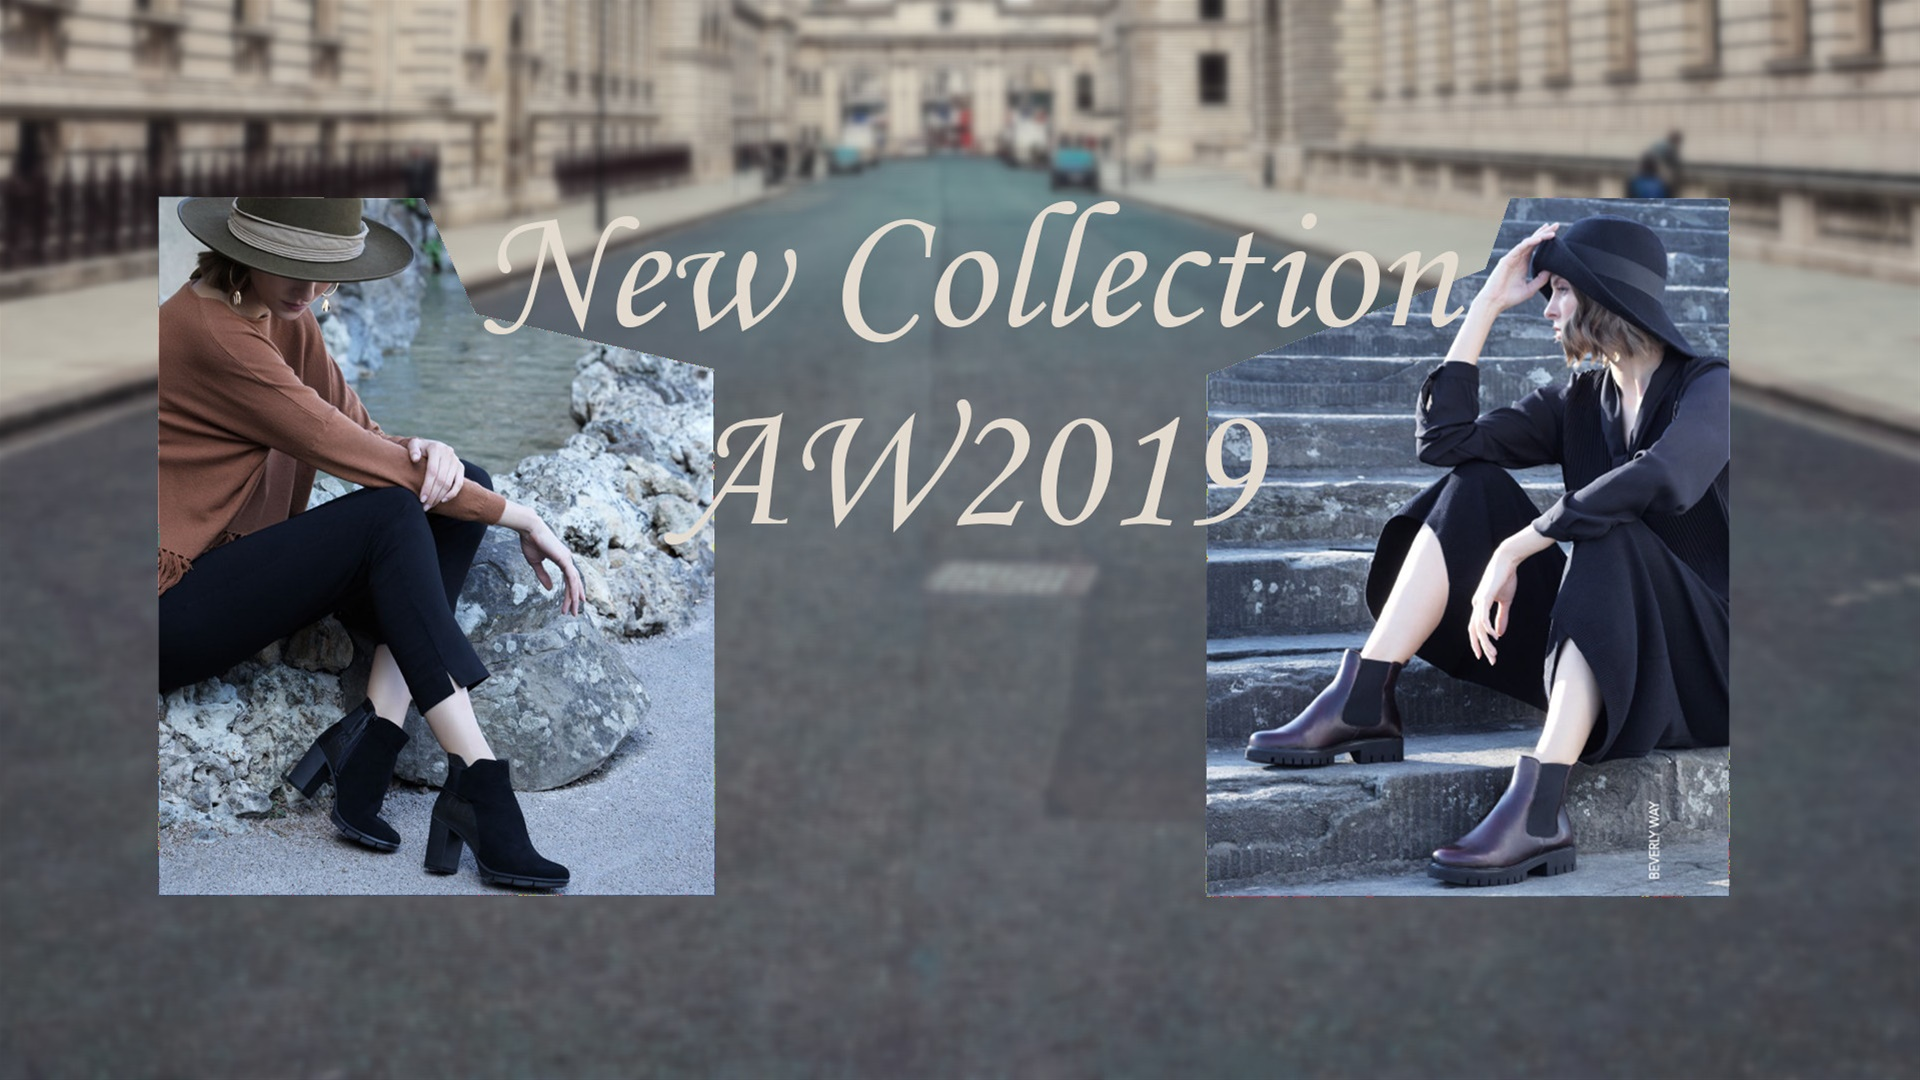 NewCollectionAnkleBoots_1.jpg